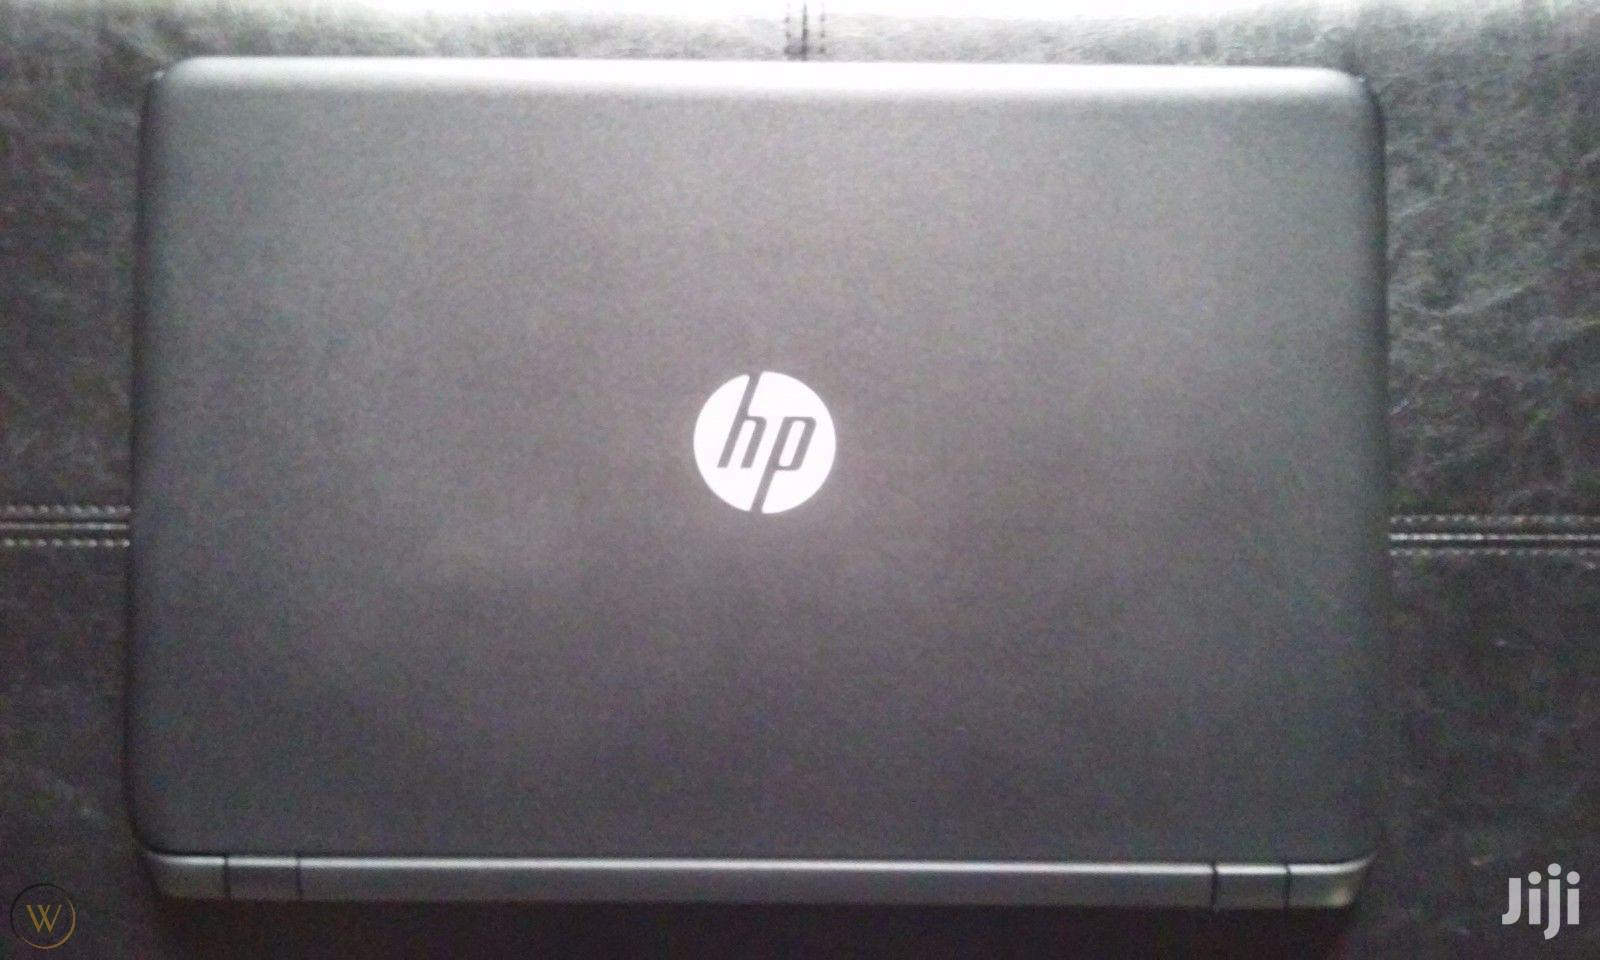 Laptop Dell 4GB Intel Celeron HDD 500GB   Laptops & Computers for sale in Teshie-Nungua Estates, Greater Accra, Ghana